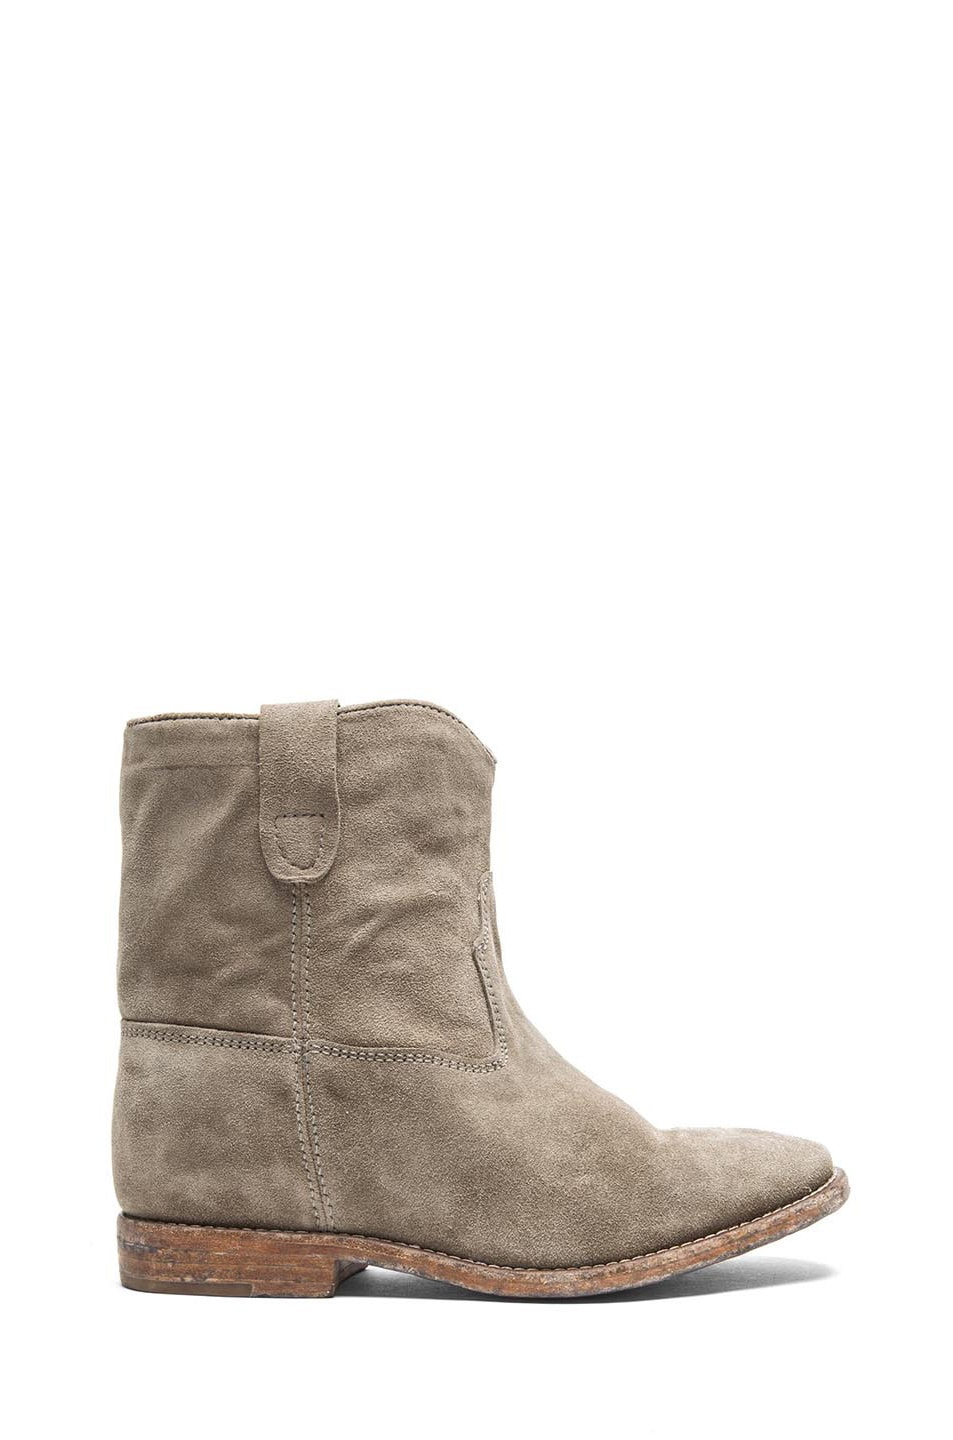 Image 1 of Isabel Marant Crisi Calfskin Velvet Leather Boots in Taupe